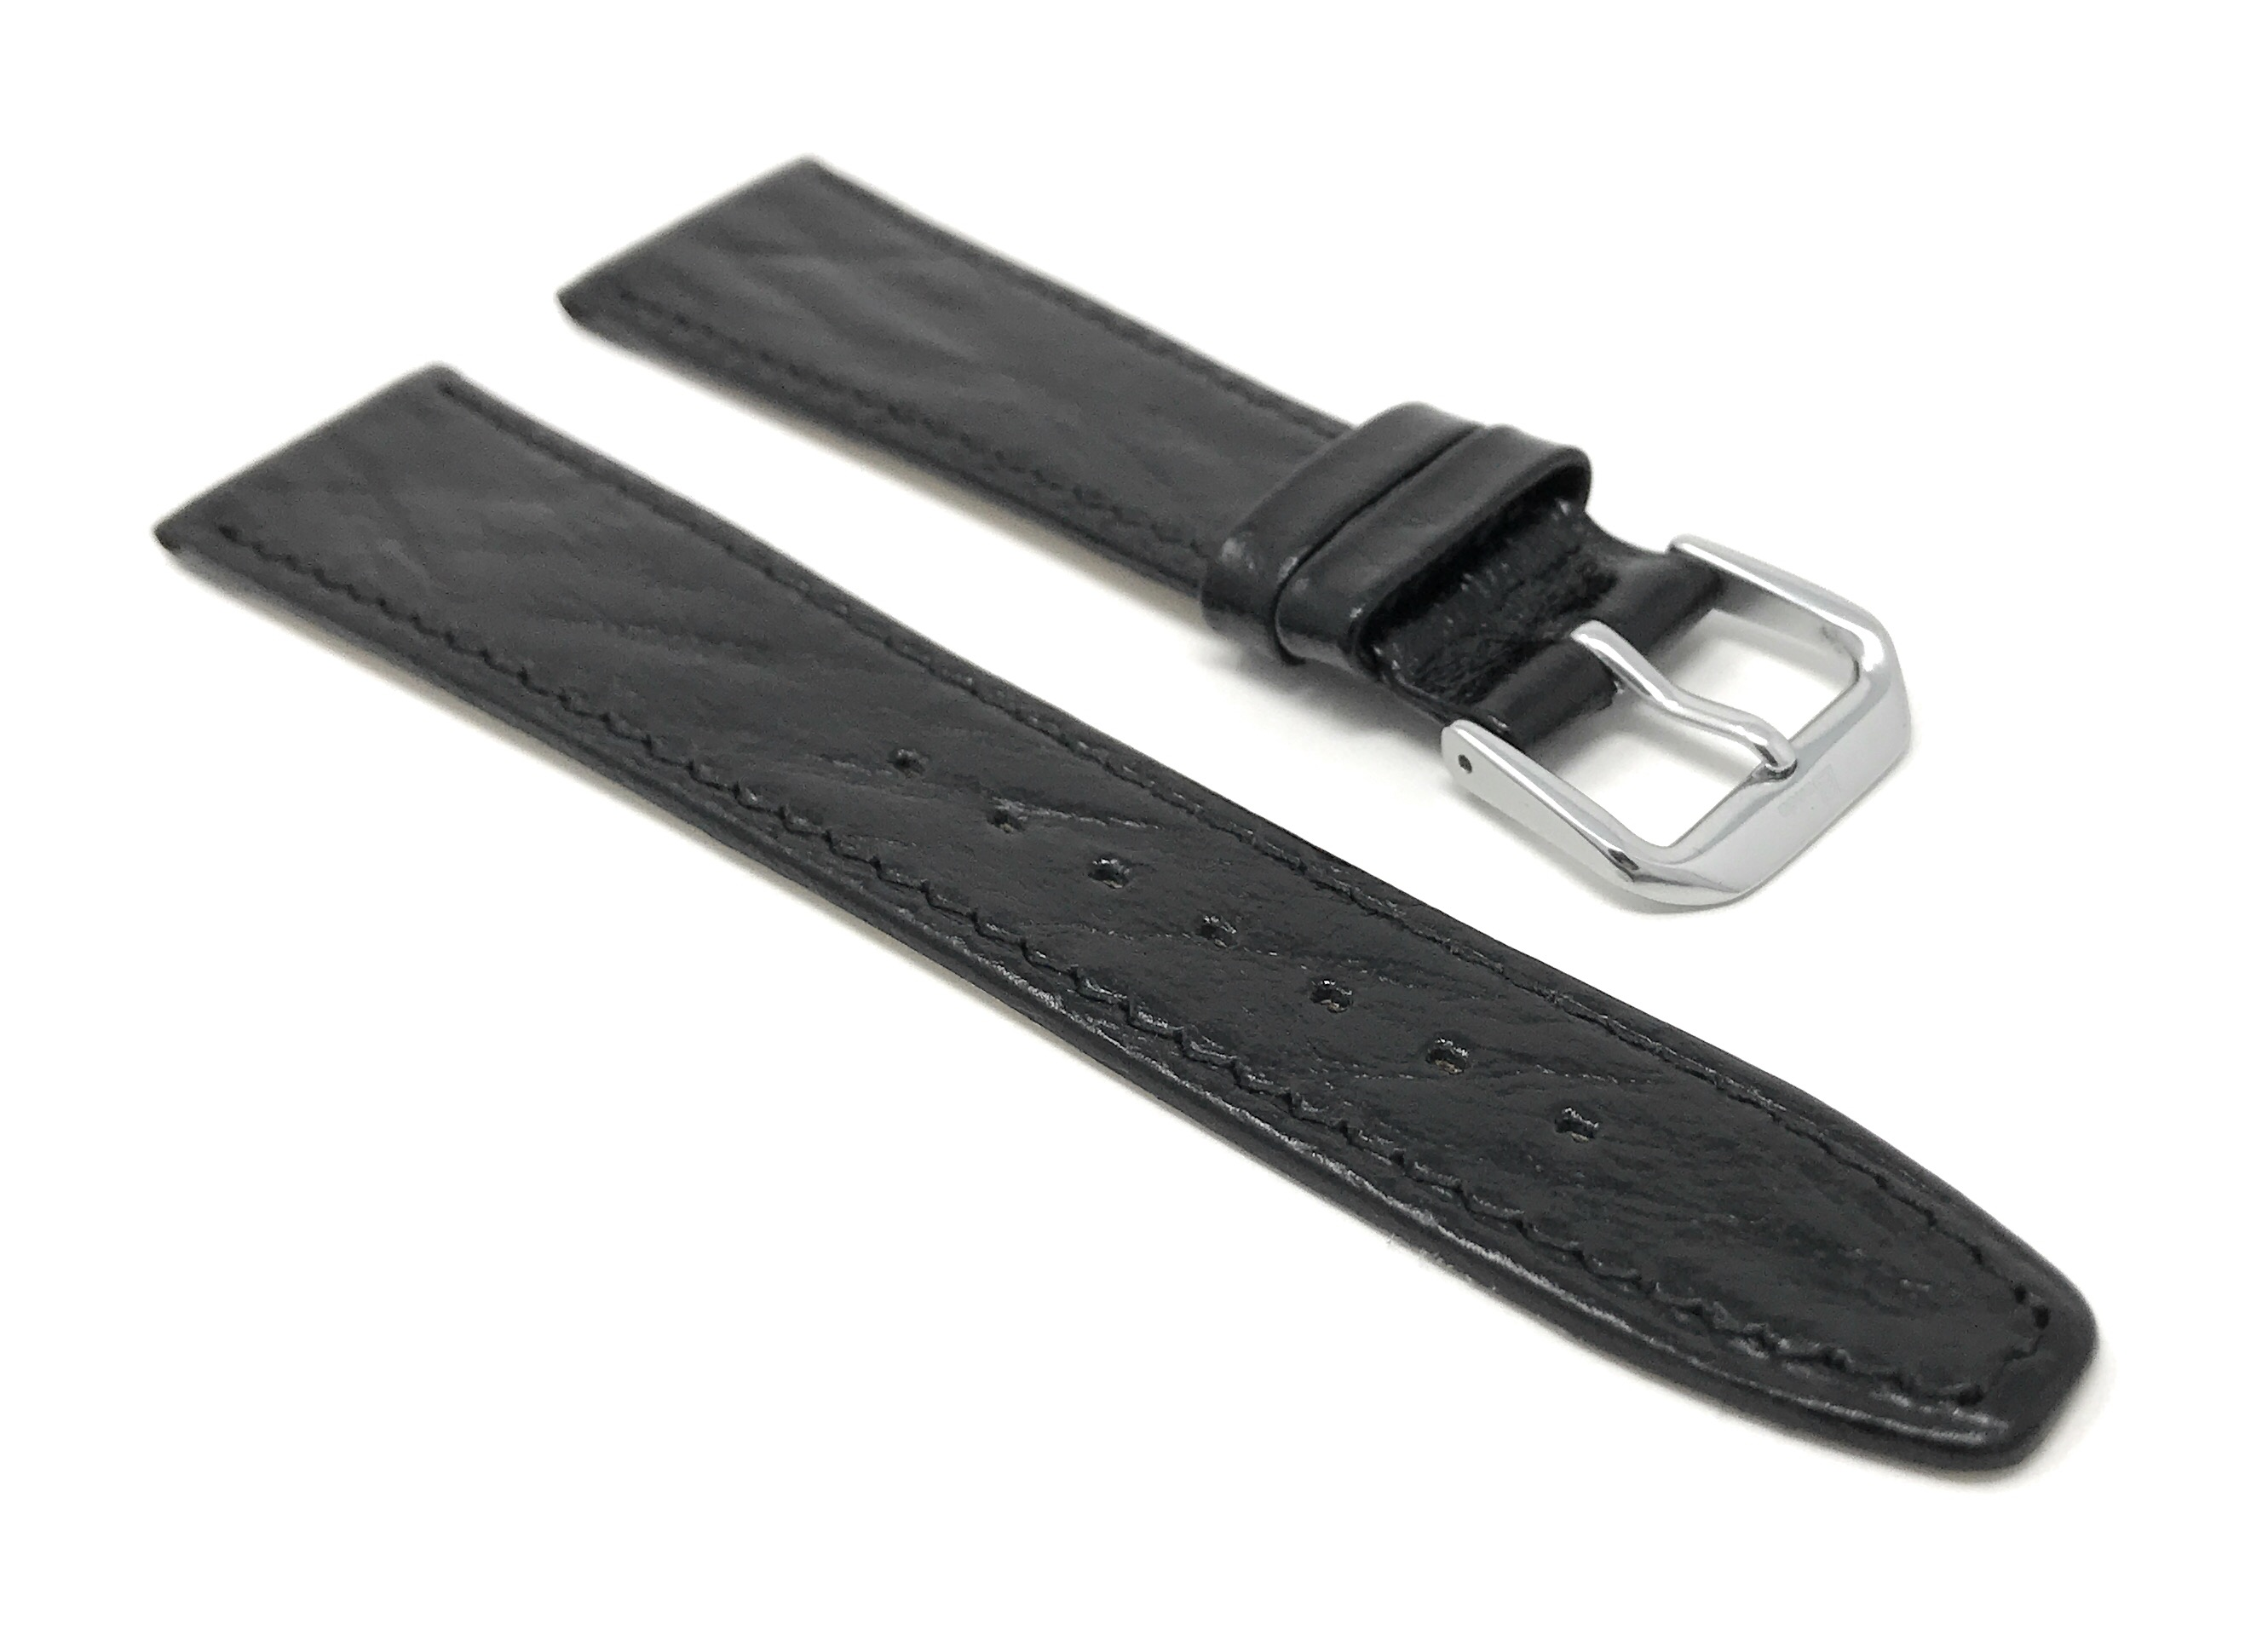 Bandini-Watch-Band-Leather-Strap-Semi-Glossy-10mm-20mm-Extra-Long-Also thumbnail 7